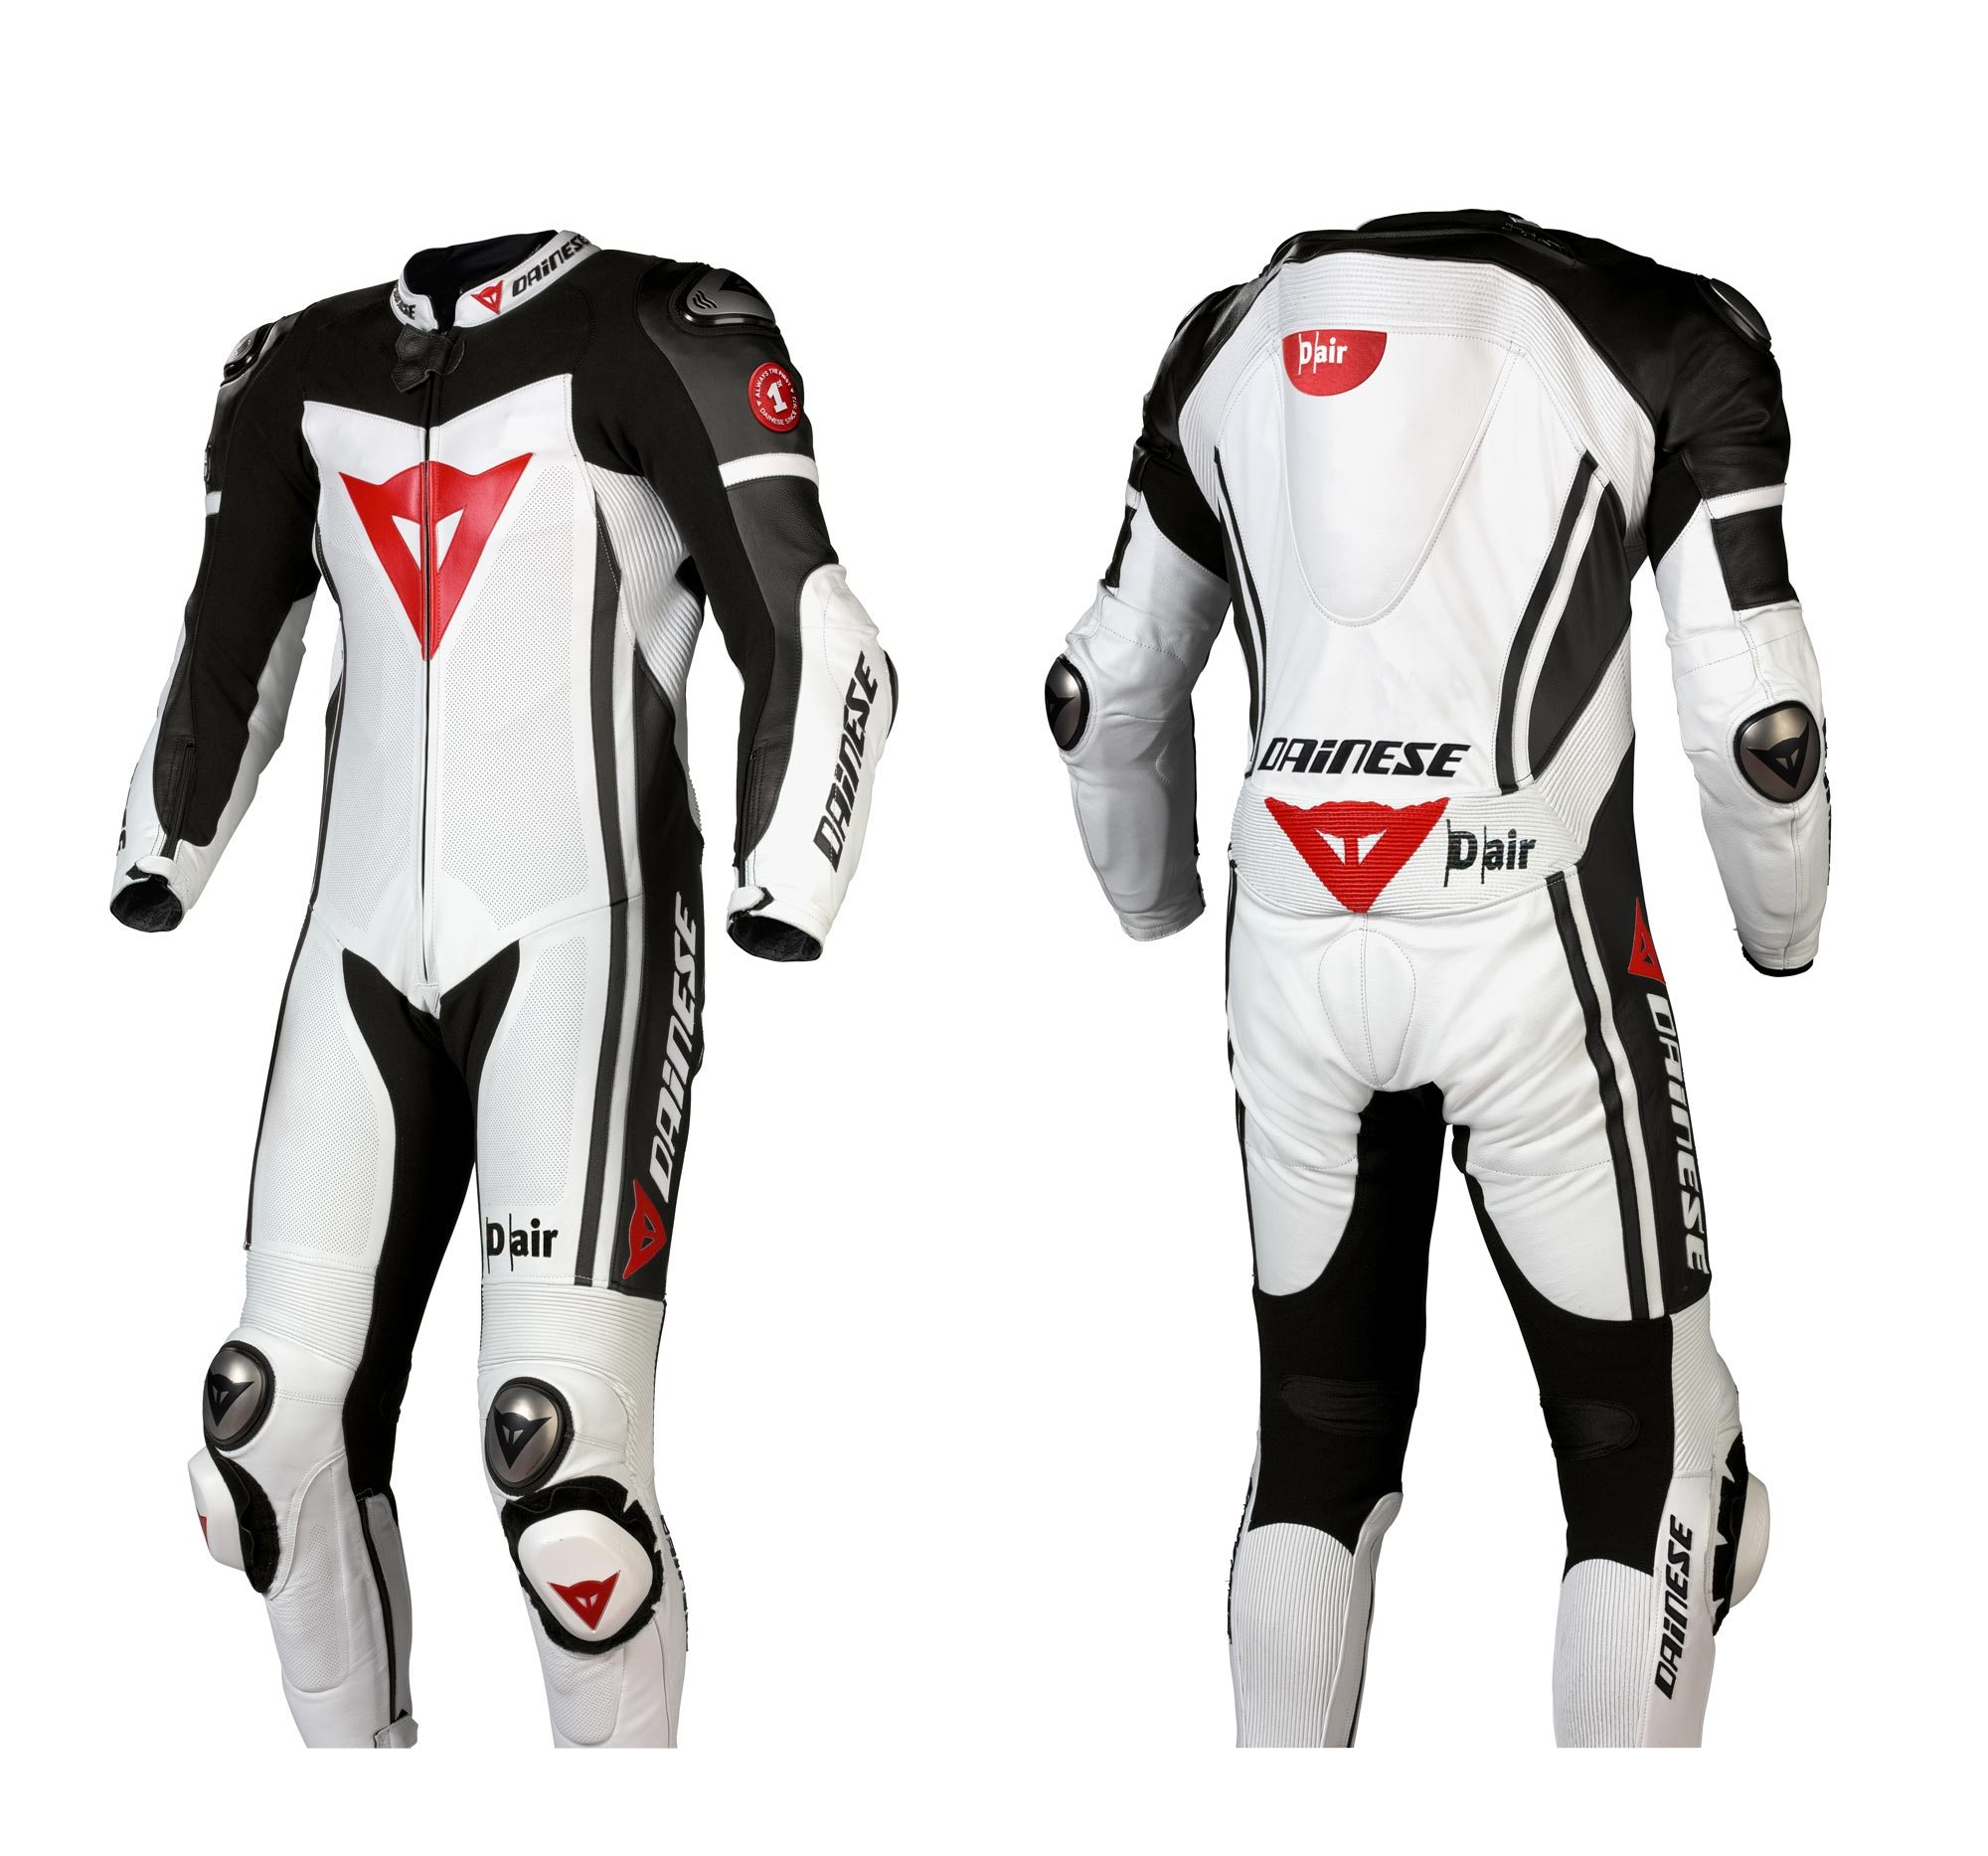 Biker Wears,Biker Suits motorbike suits,Racing suits,Jackets,Suits,Shoes